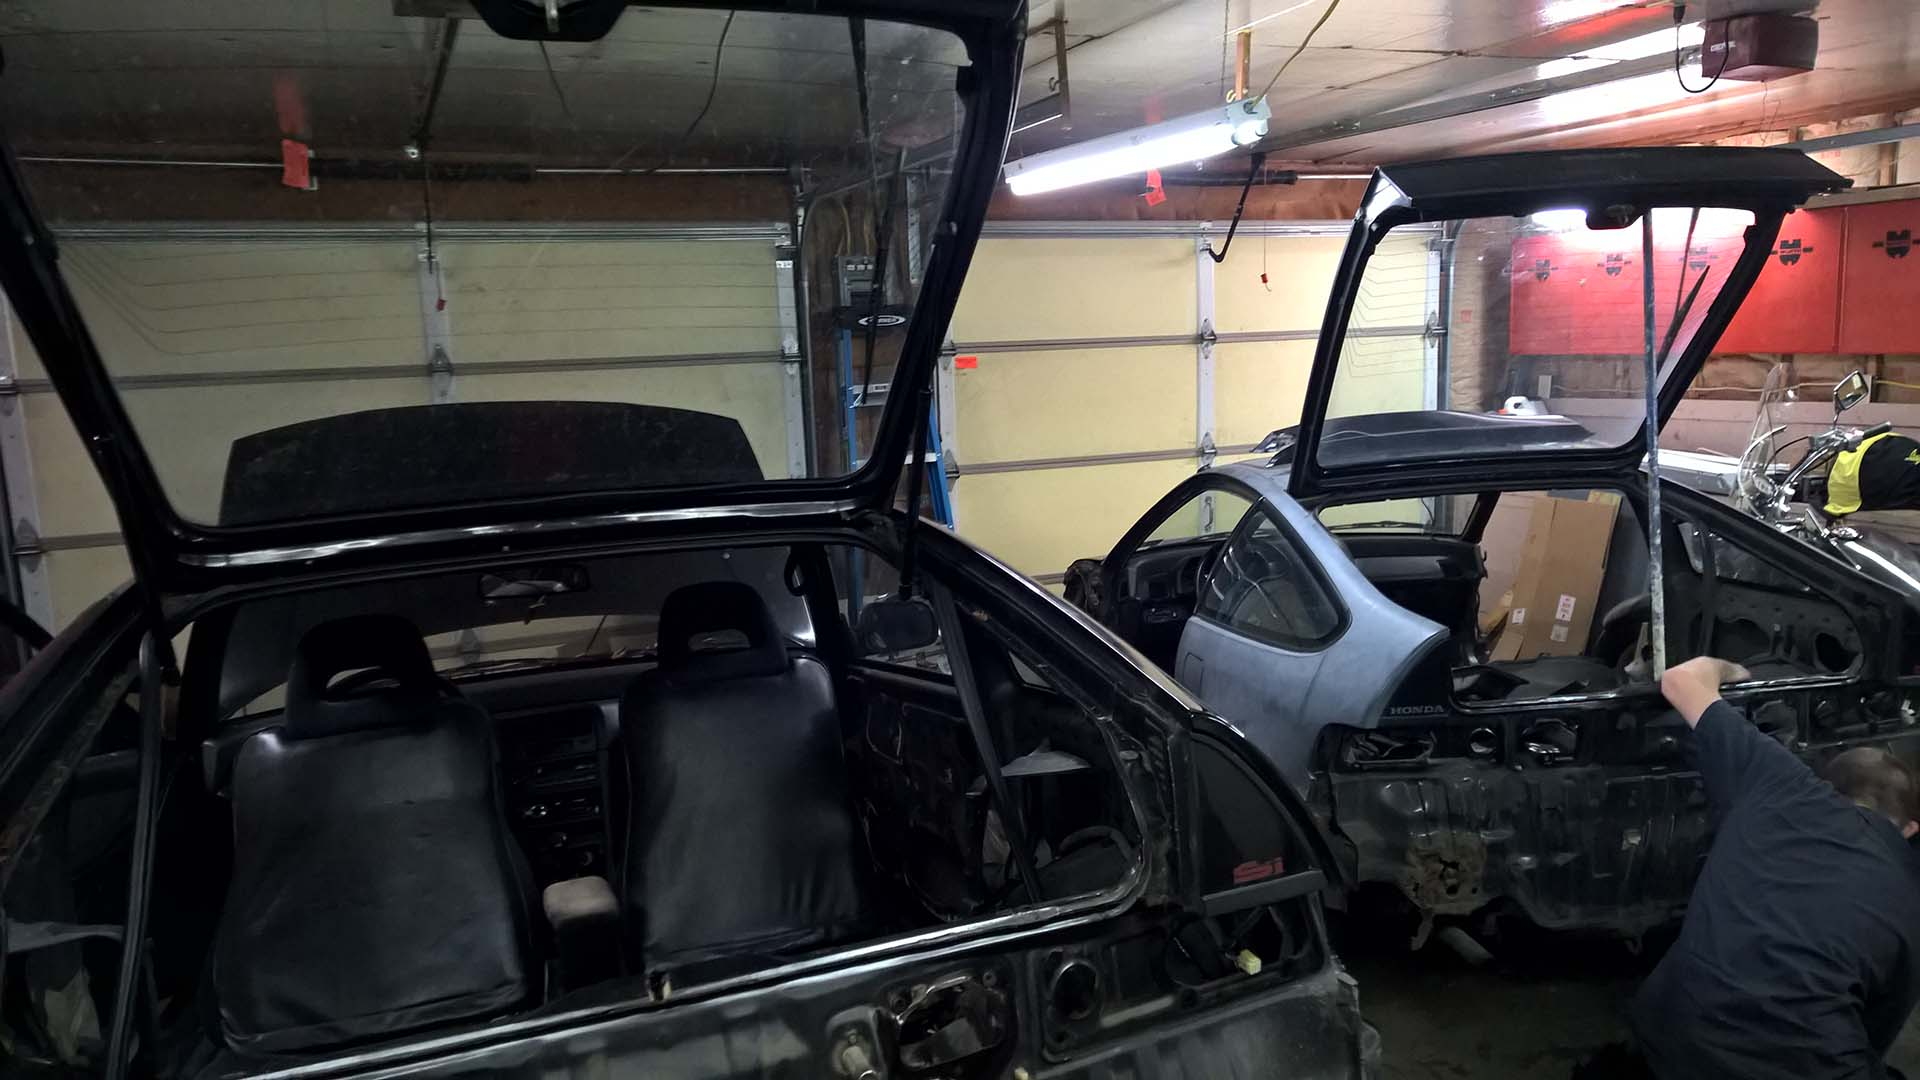 Working on Removing a Piece of the Rear Panel from the First CRX